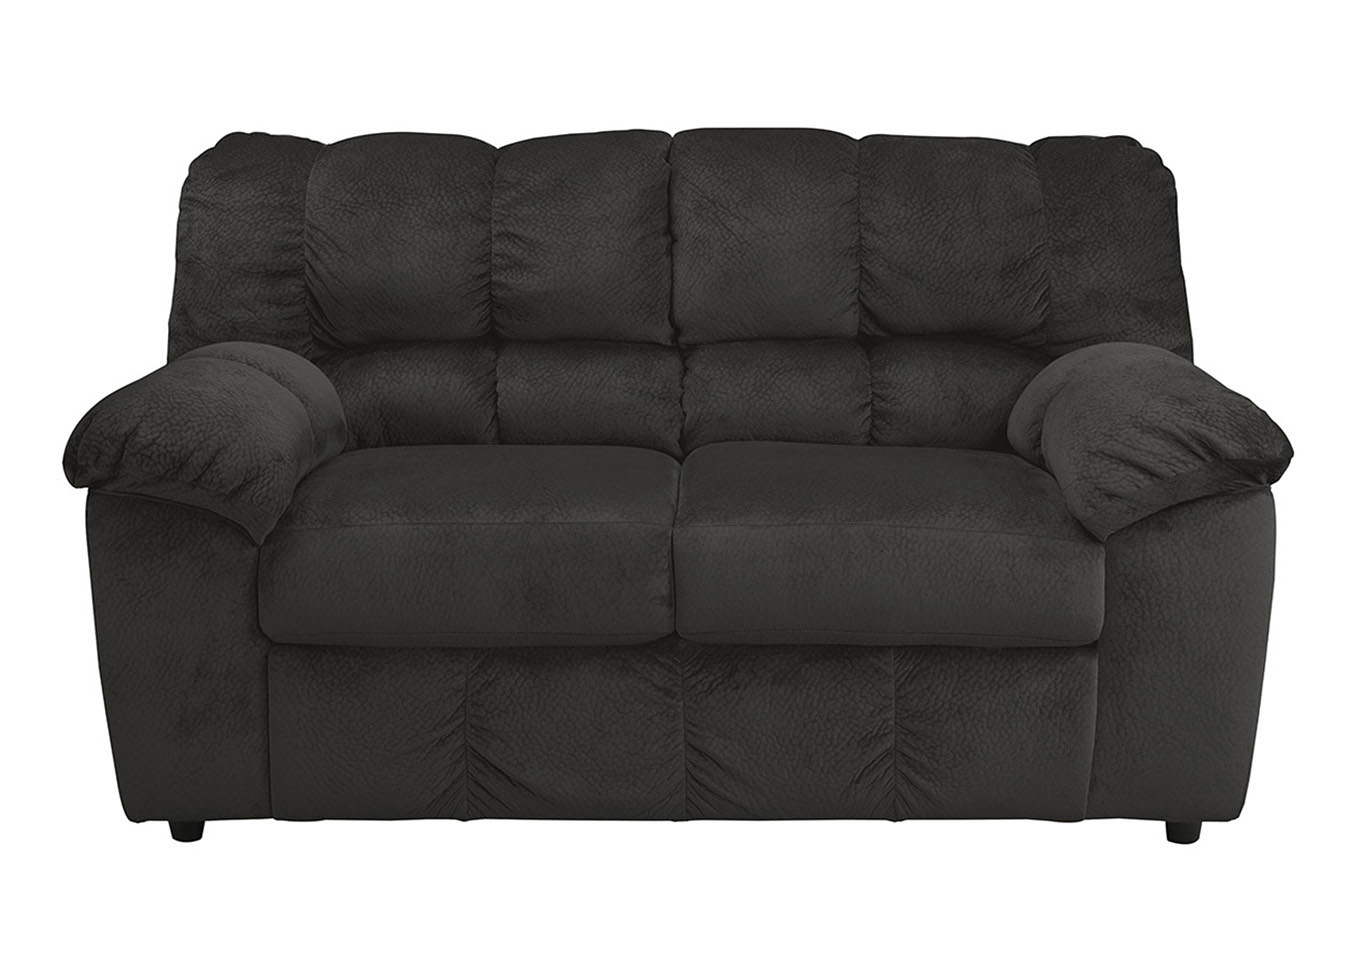 Julson Ebony Loveseat,Signature Design by Ashley